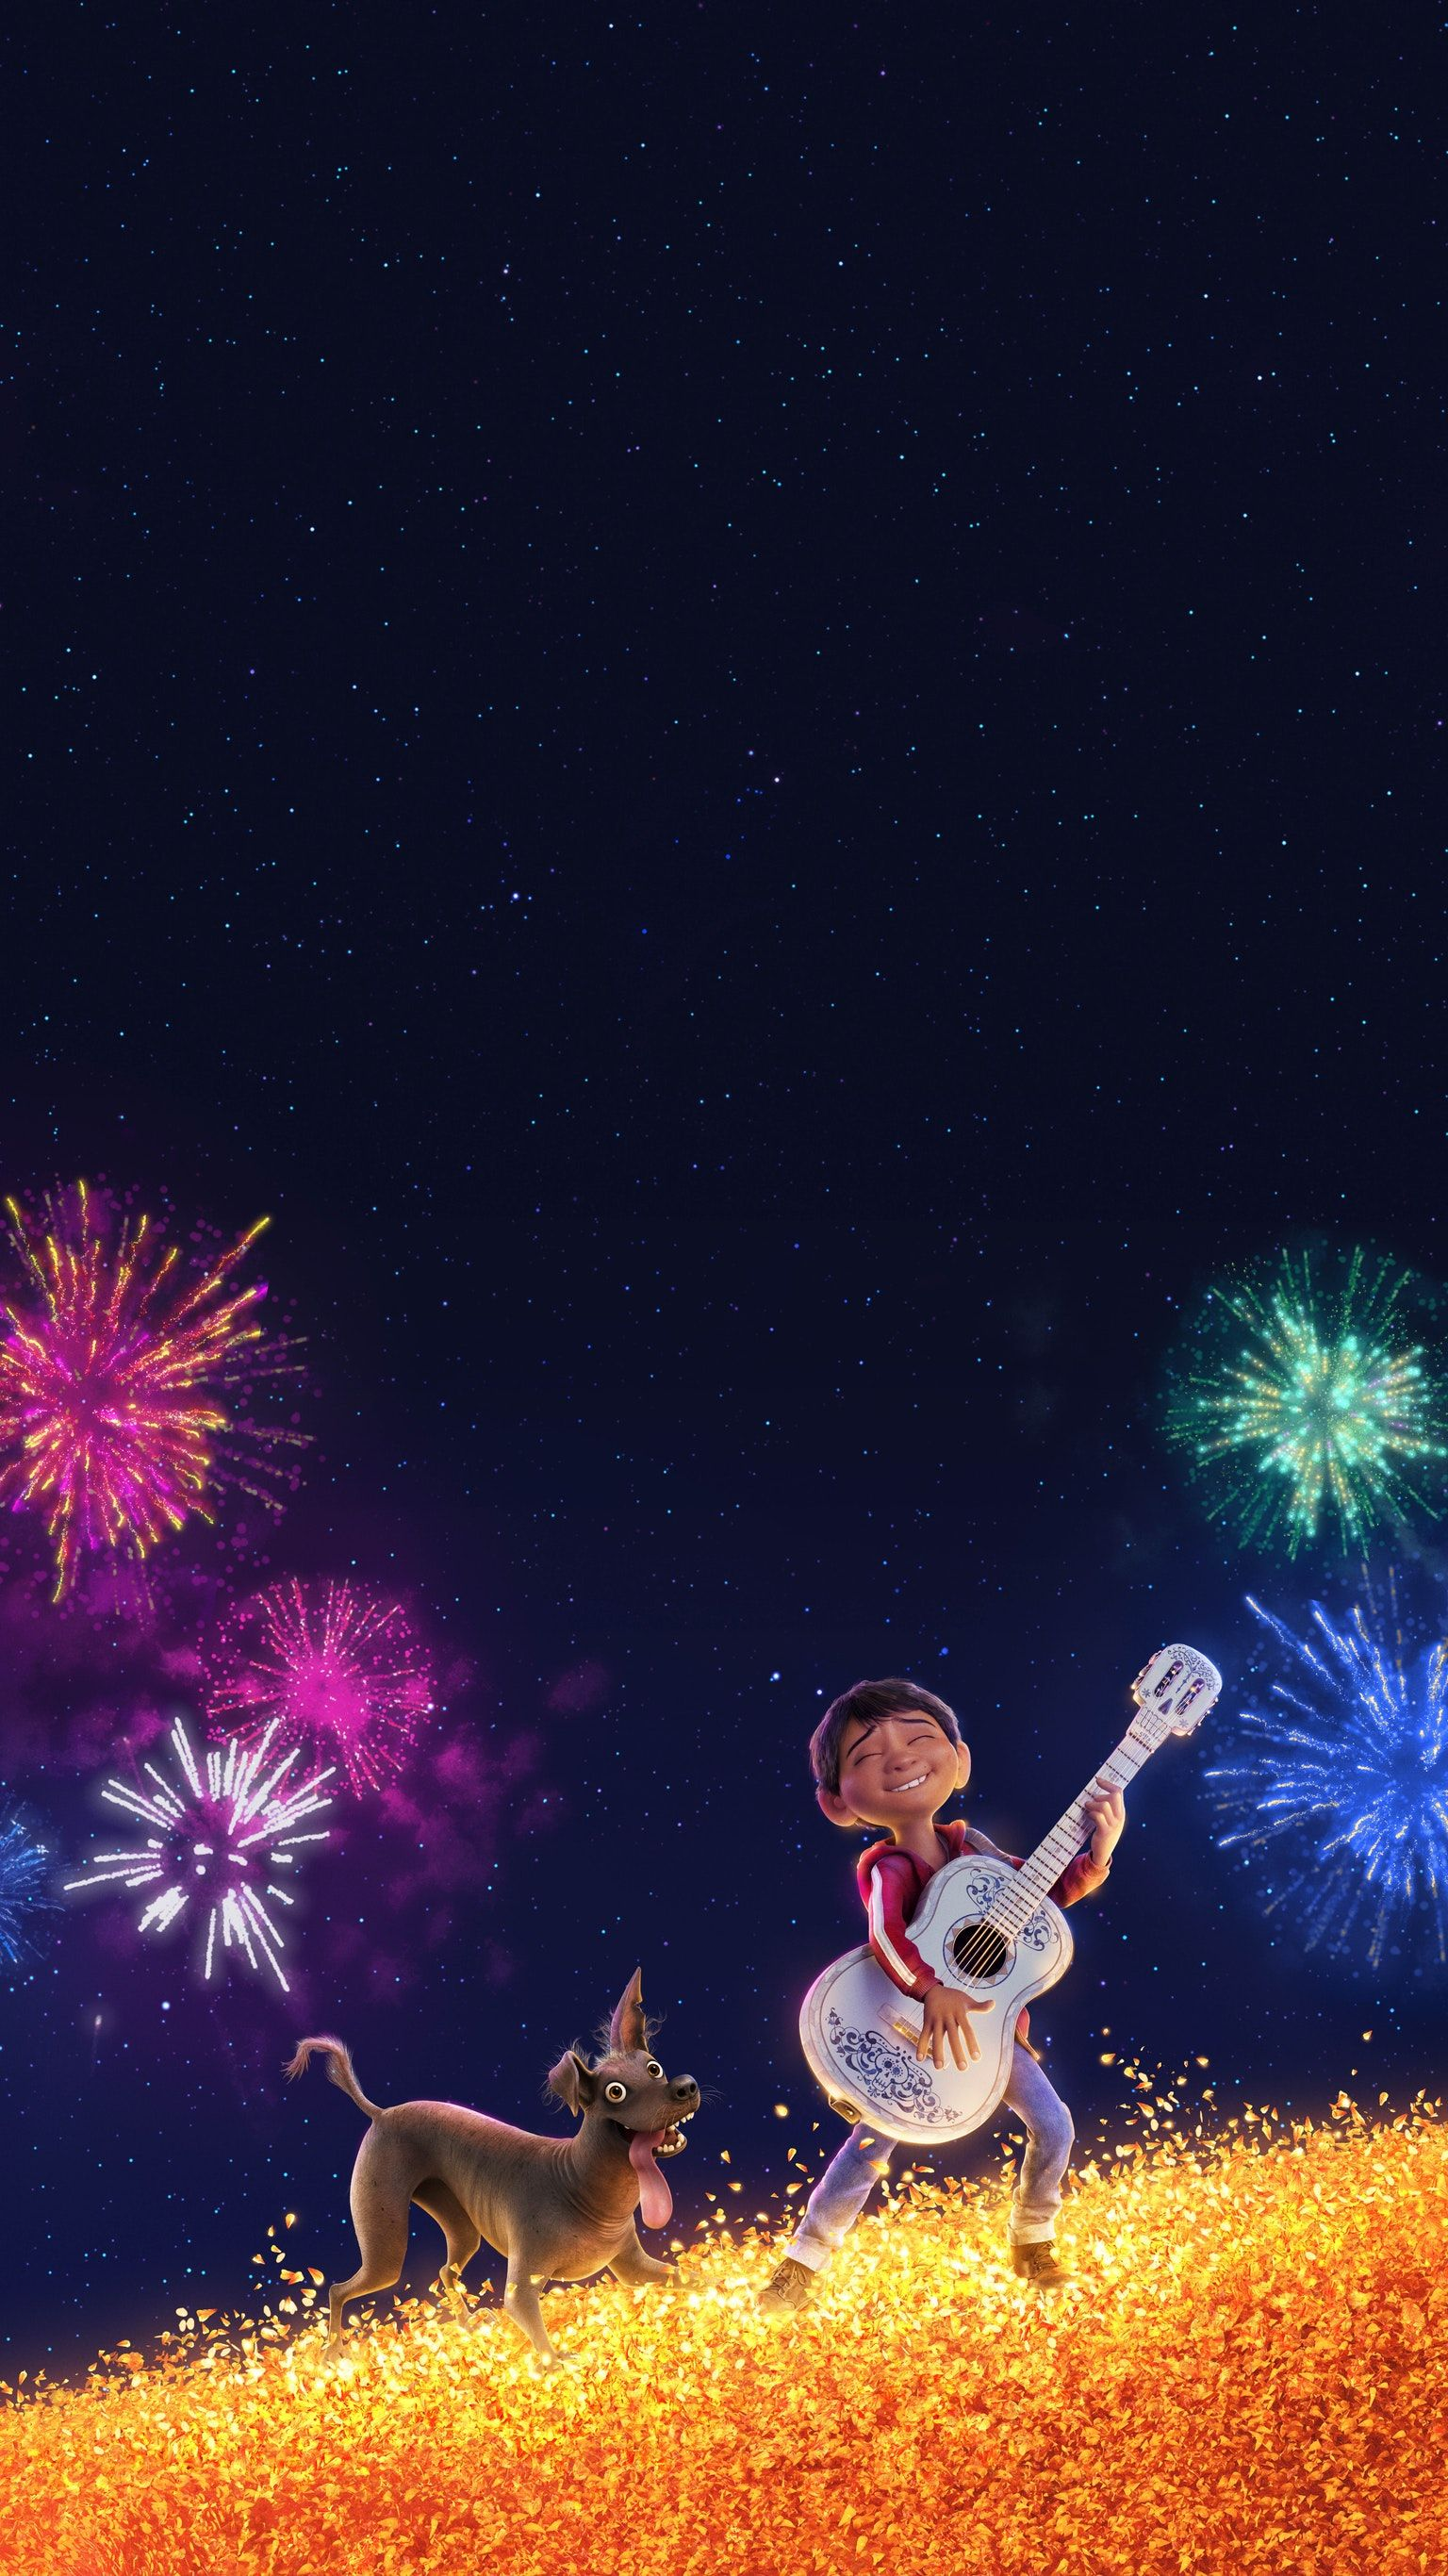 The Top Free Disney Background for iPhone 11 Pro Max